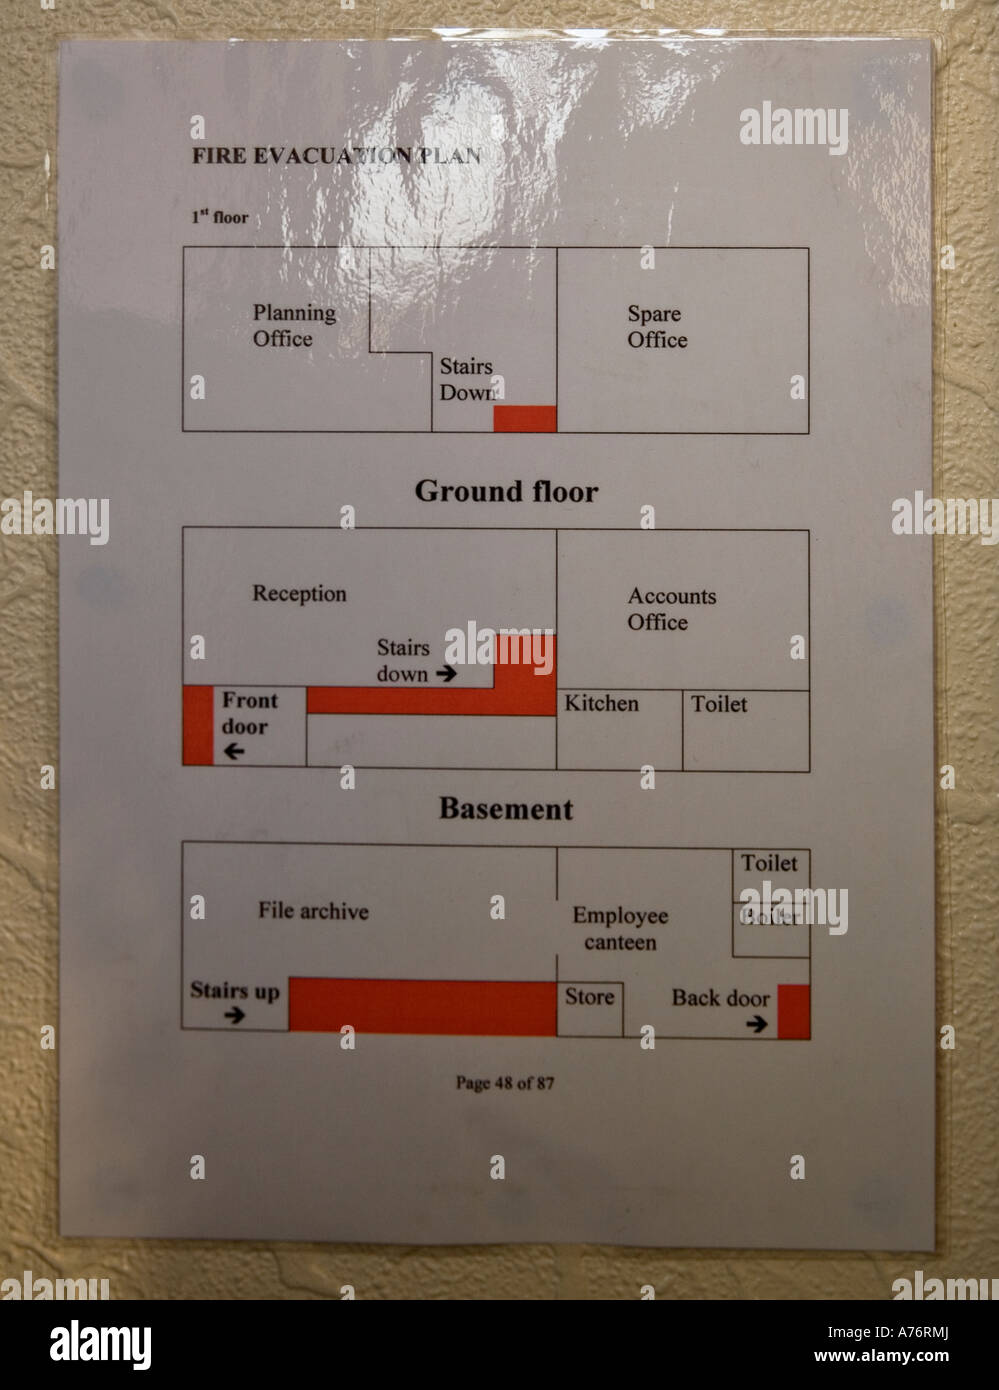 Office Or Business Fire Emergency Floor Plan On The Wall Stock Photo Alamy